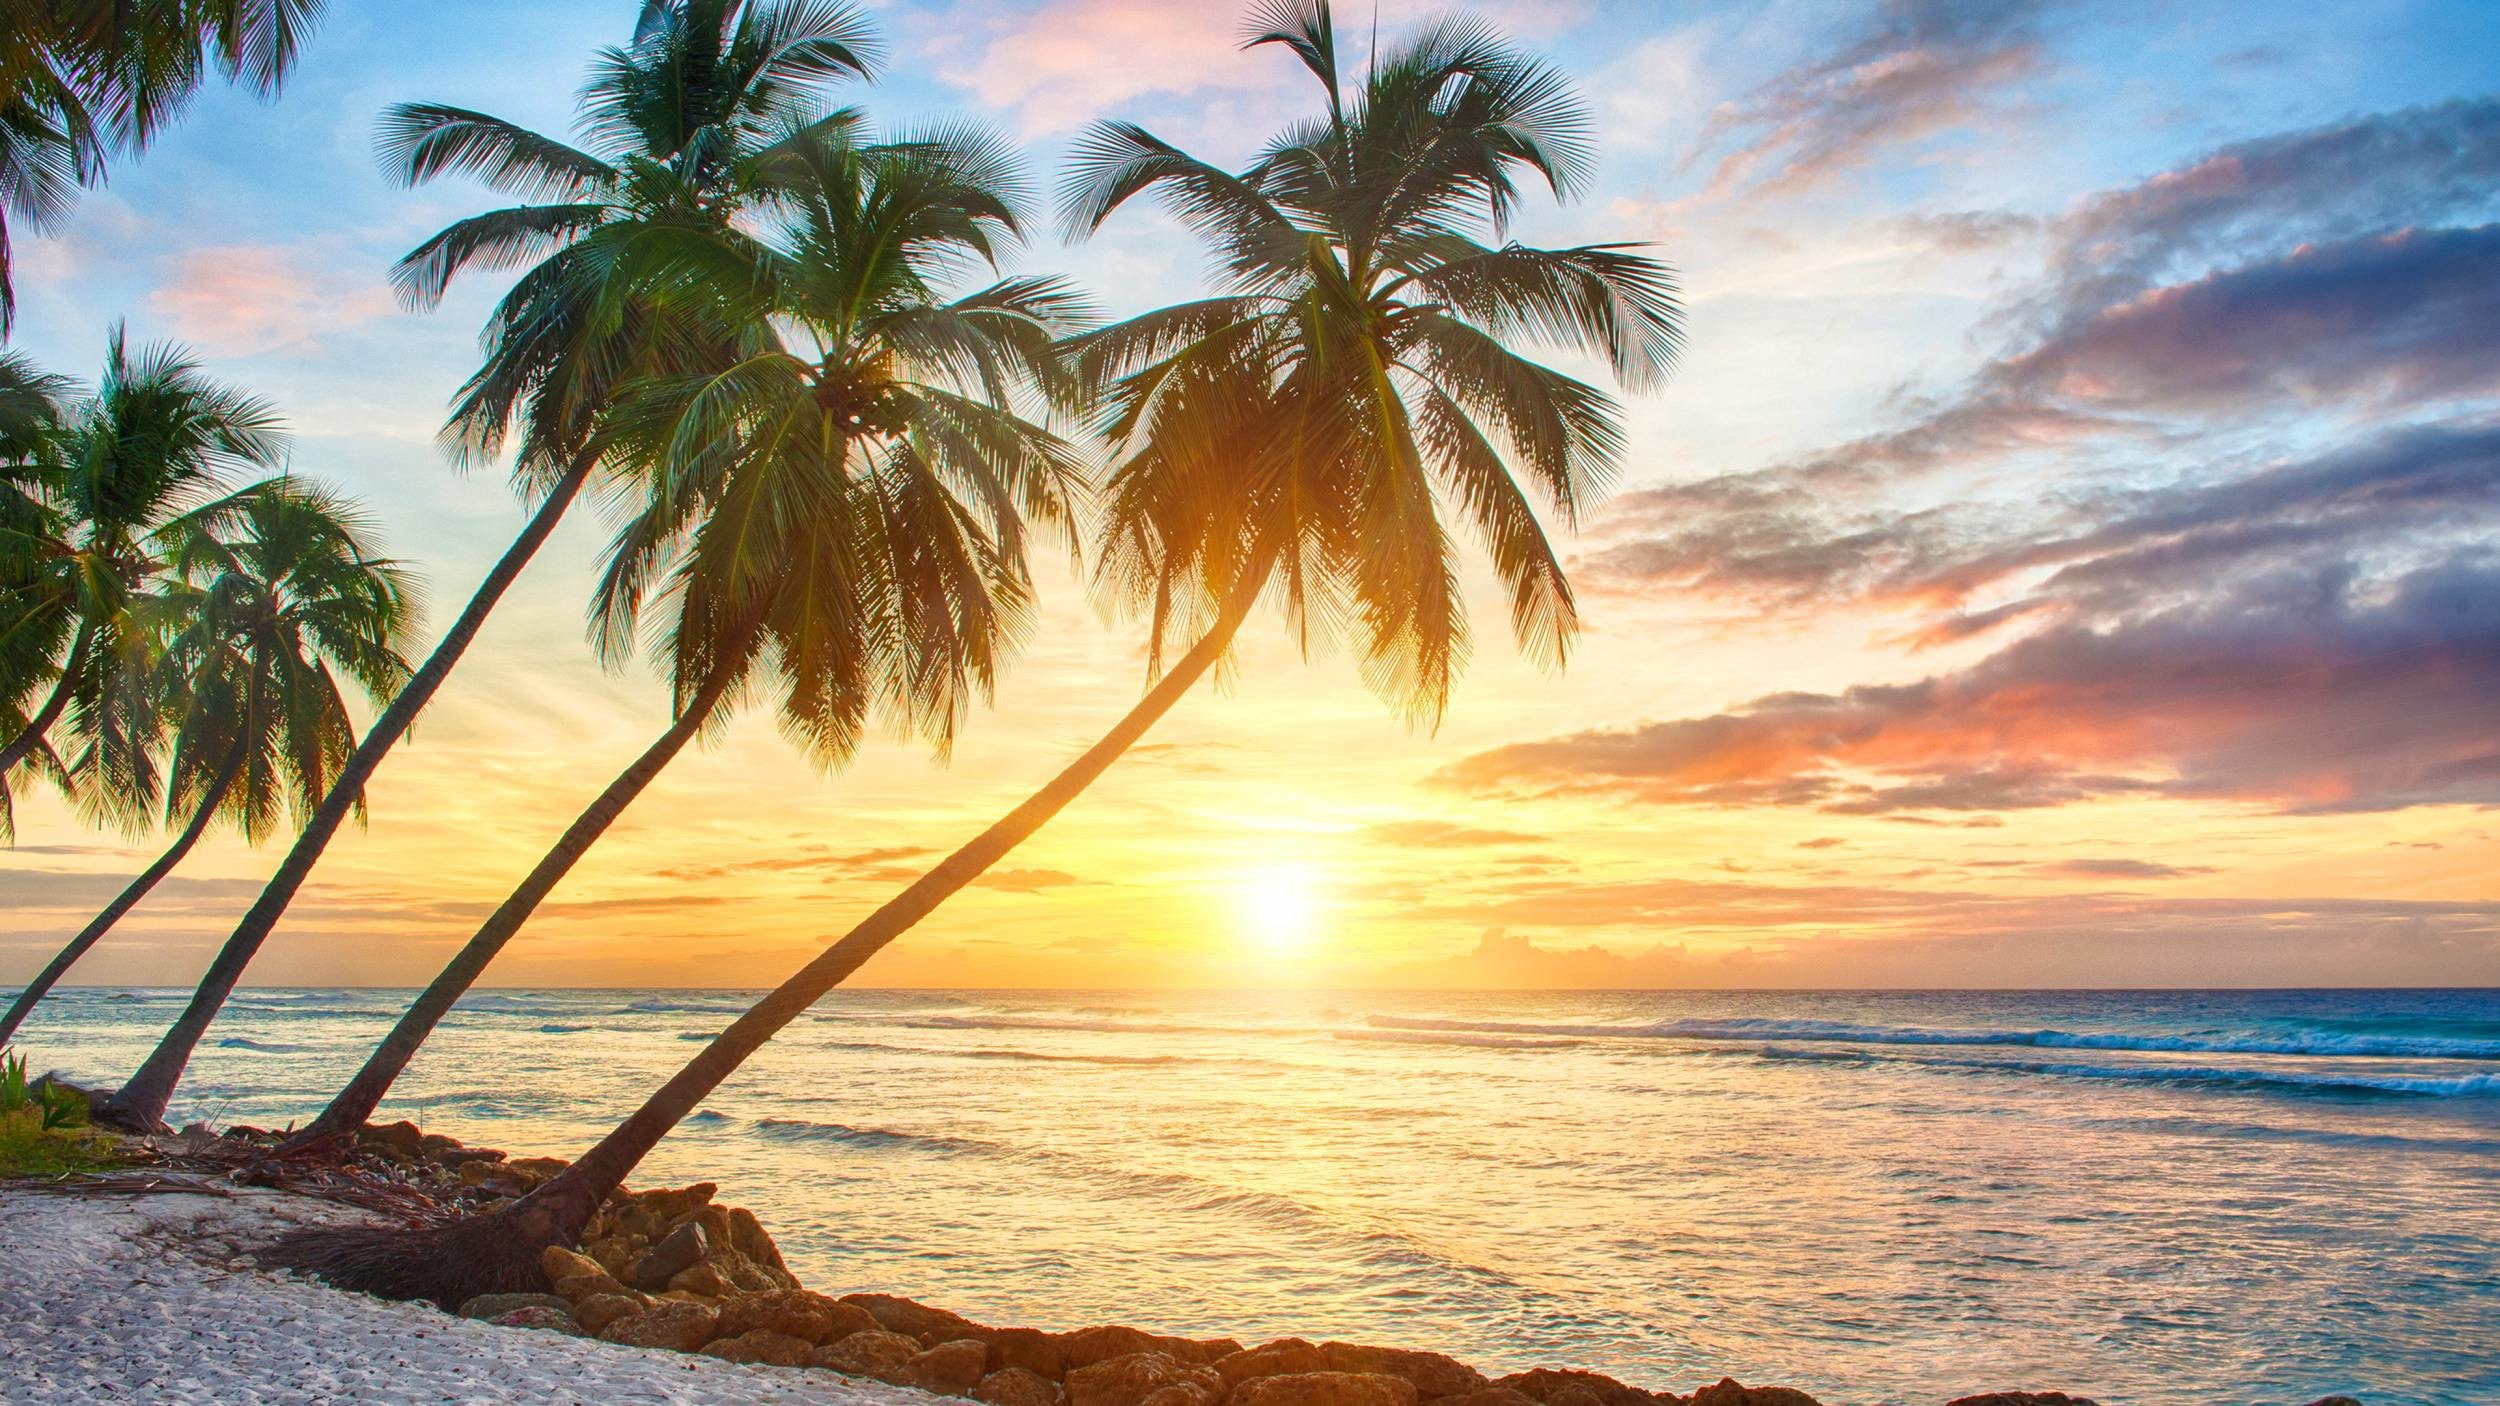 Hd Tropical Island Beach Paradise Wallpapers And Backgrounds: Tropical Desktop Background (56+ Images